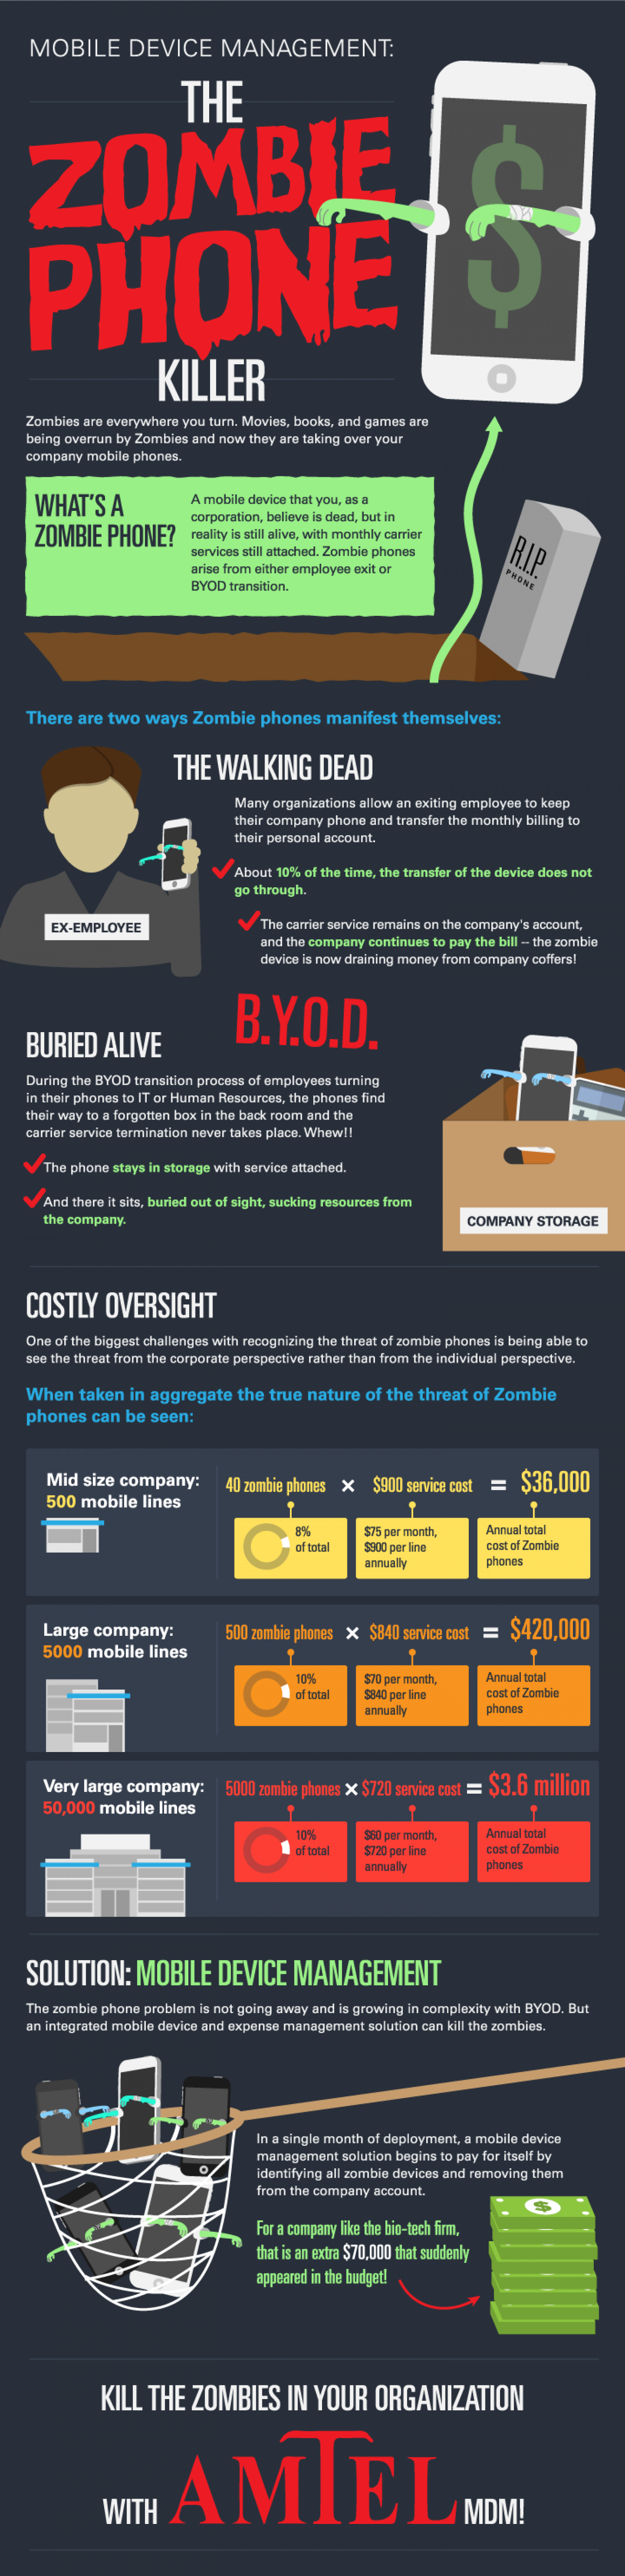 The Zombie Phone Killer - Mobile Device Management Infographic